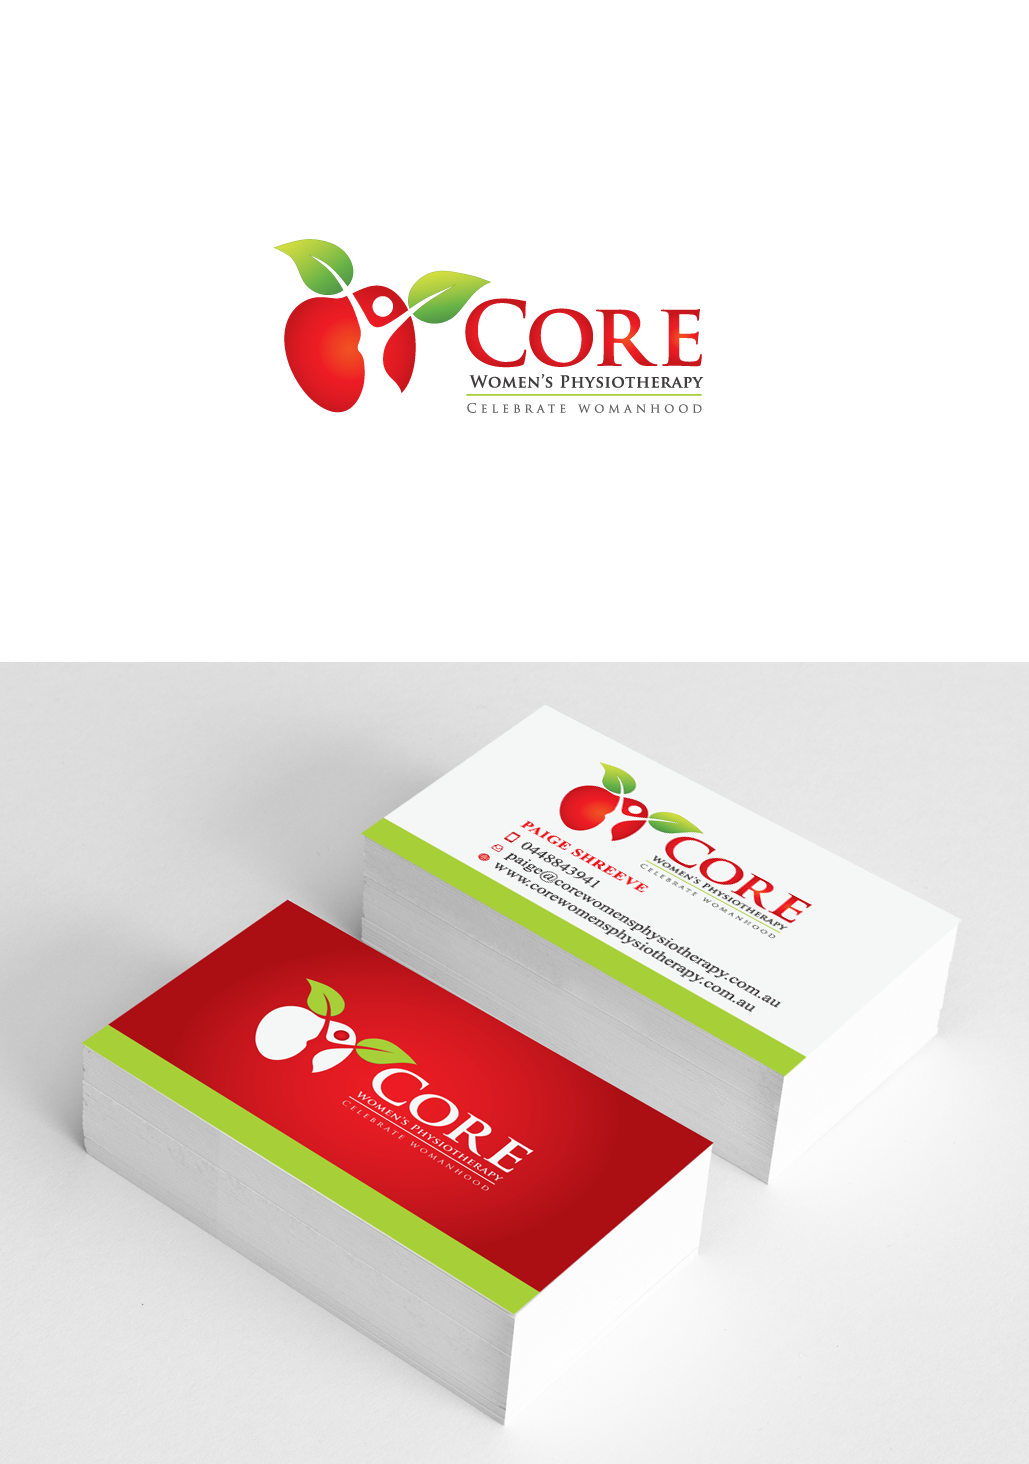 Create a fresh logo and business card for a womens physiotherapy clinic